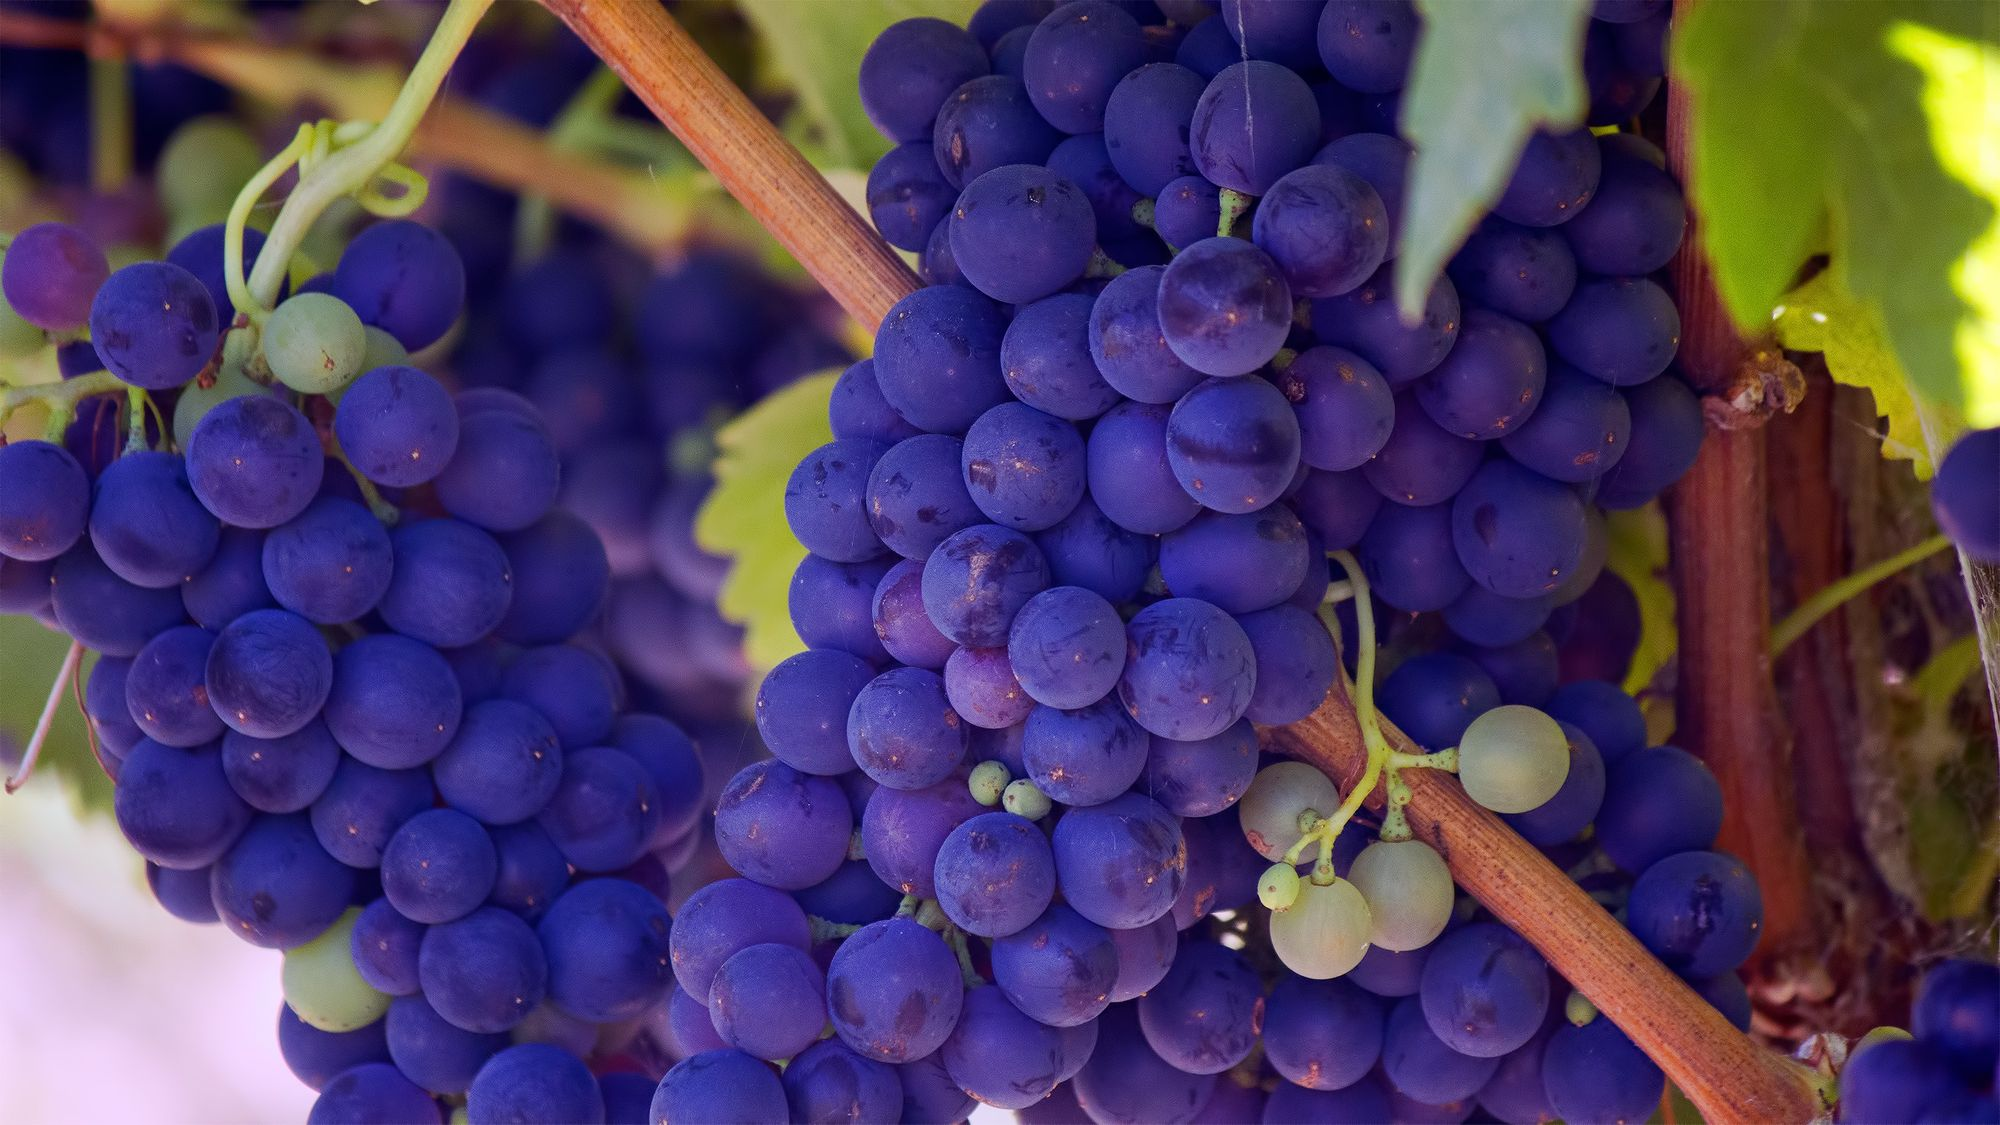 Red grapes contain resveratrol, a potent antioxidant by bill-williams